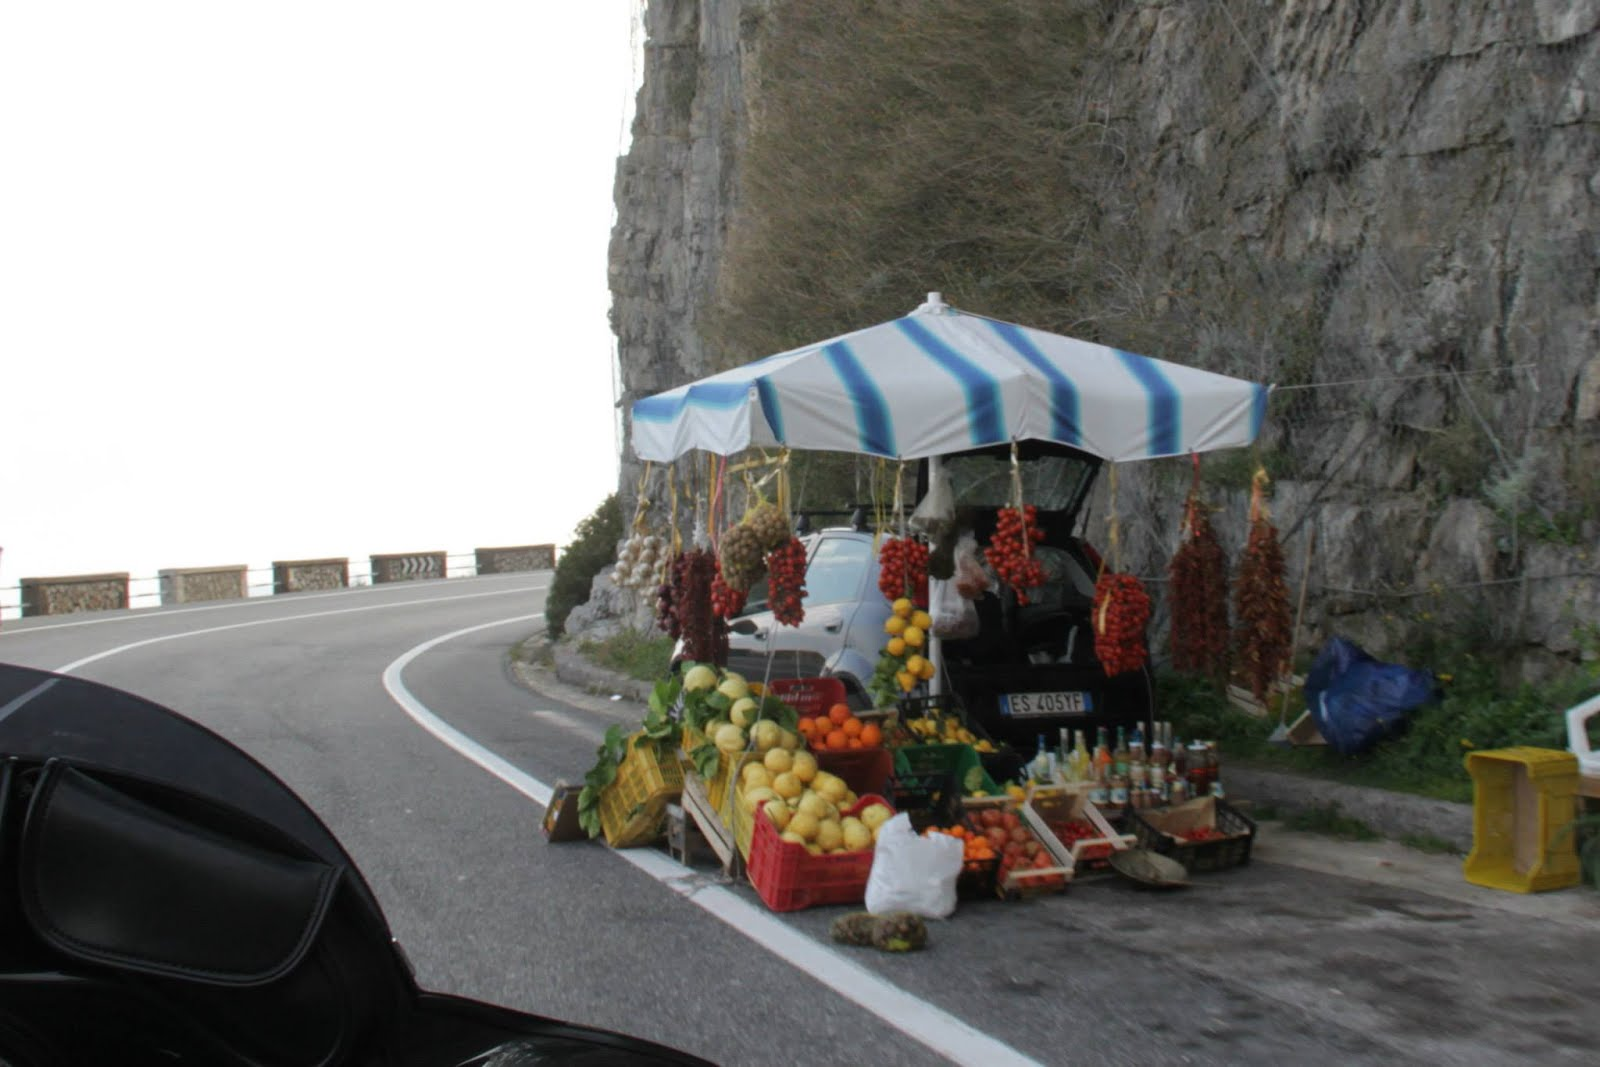 Fruit Vendor on the Amalfi Coast